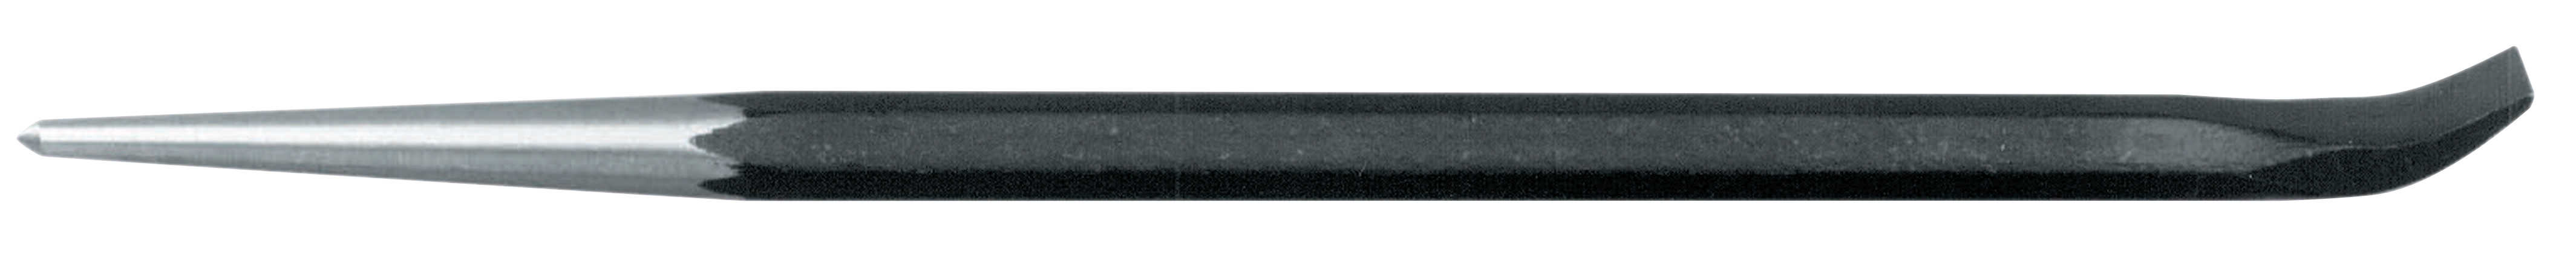 Mayhew Tools Line-Up Pry Bar, 38', 3/4', Offset Chisel/Straight Tapered Point, Black Oxide